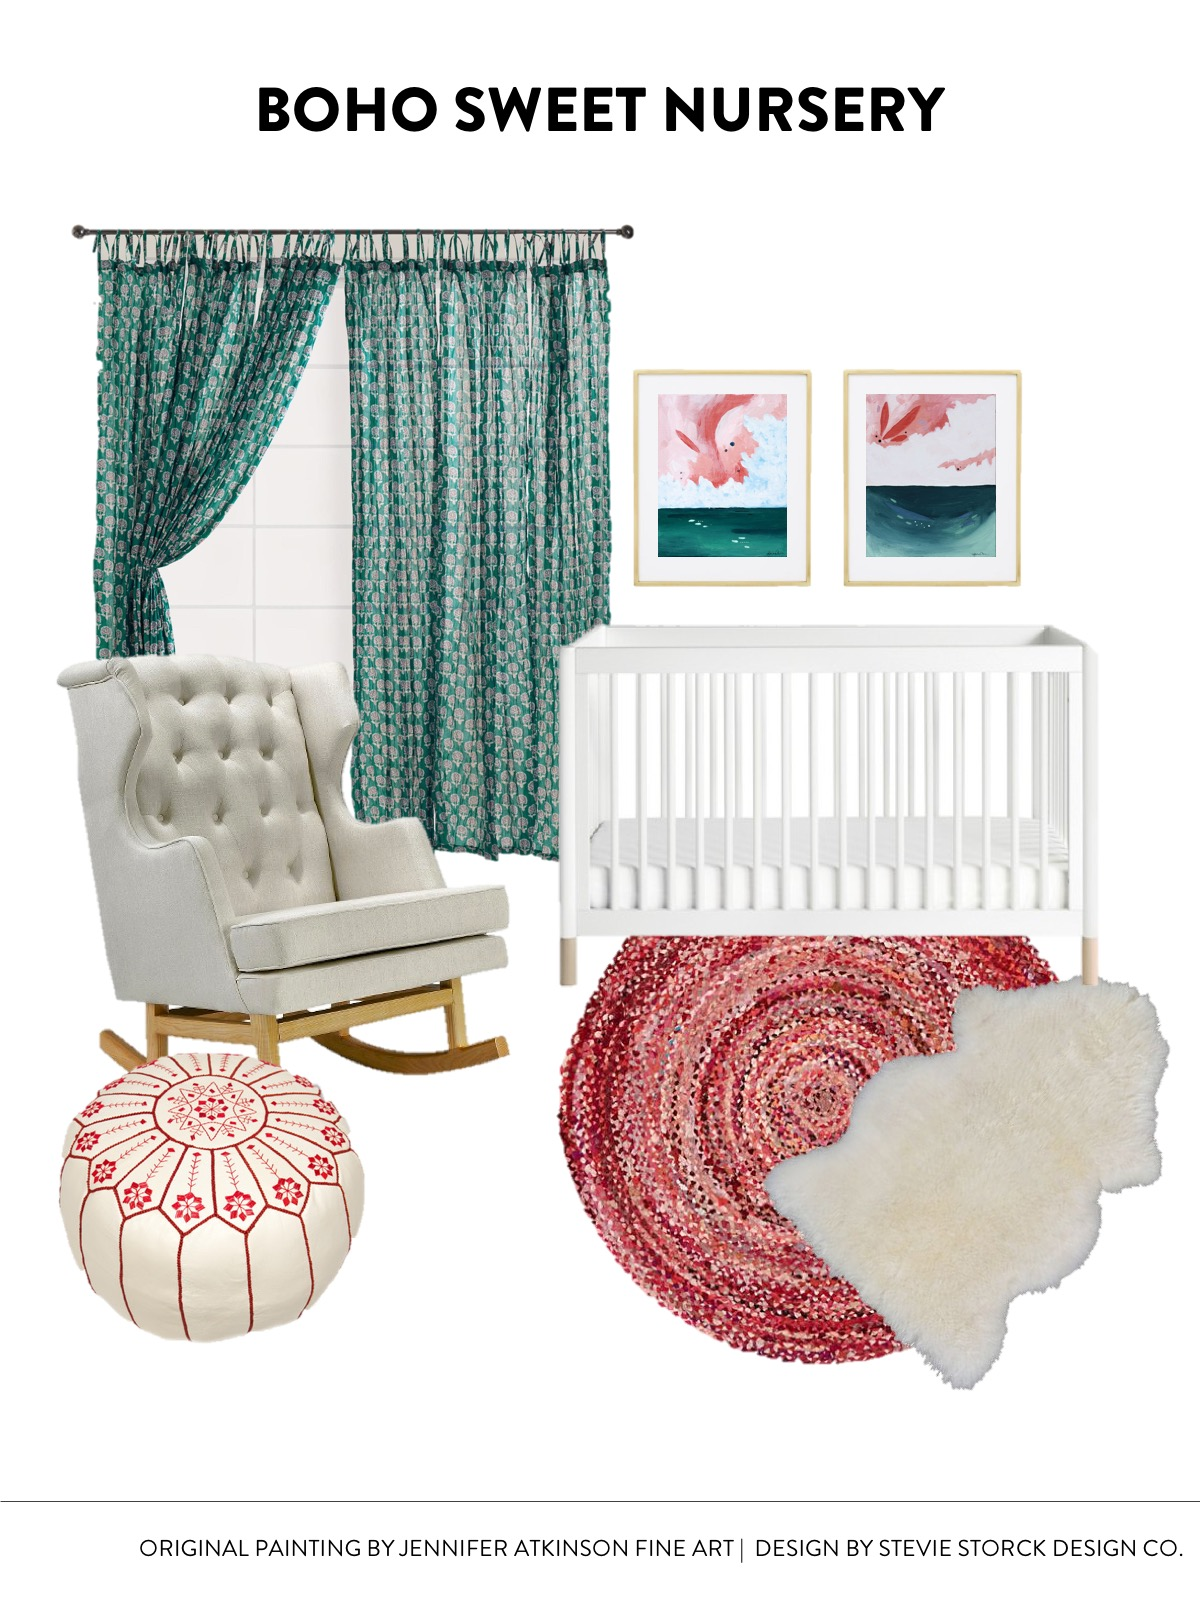 Sweet Boho Nursery Design Inspiration | CLICK THROUGH FOR SOURCES! Teal, Red Pink, White & Gold Color Scheme inspired by abstract art. Layered rugs, sheepskin and braided rug, white leather moroccan pouf, tufted rocking chair